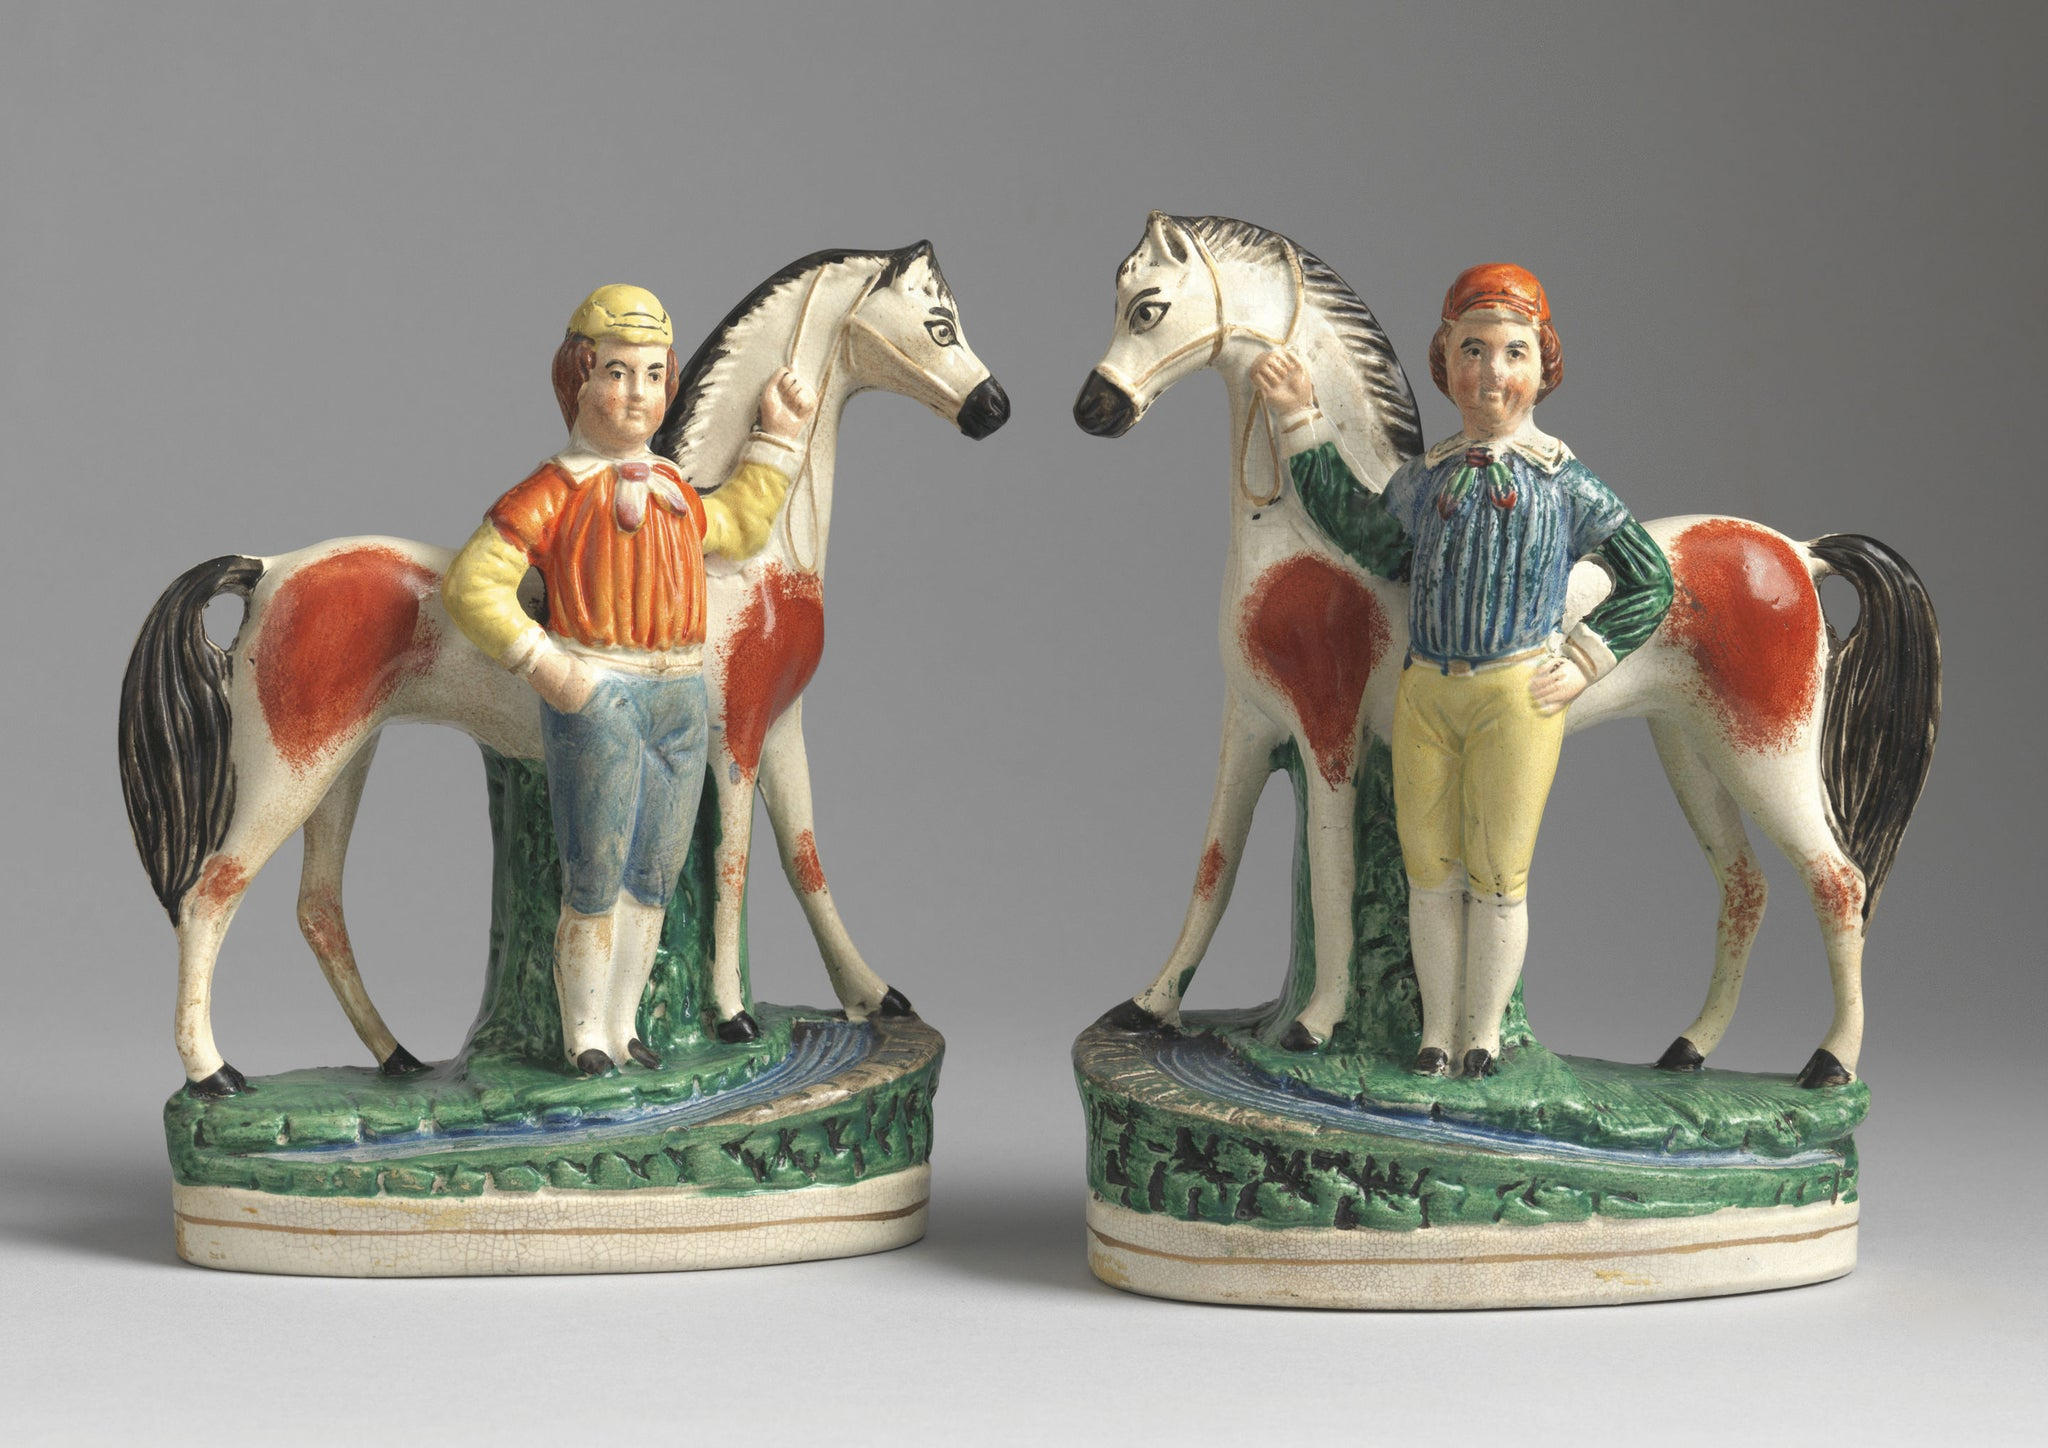 A Pair of Primitive Equestrian Figures